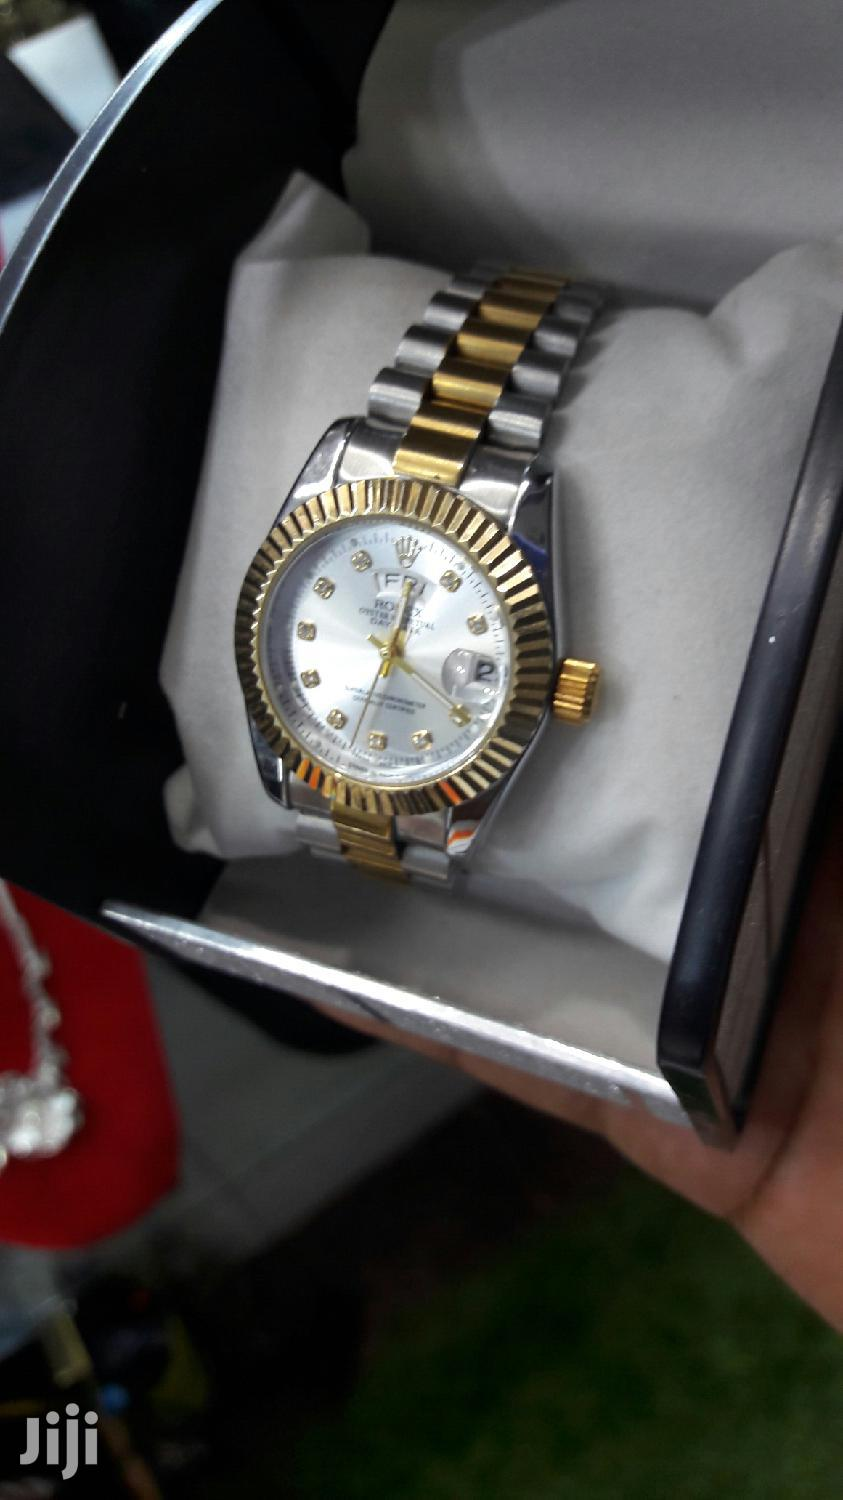 Watches 💯Original Rolex | Watches for sale in Kampala, Central Region, Uganda